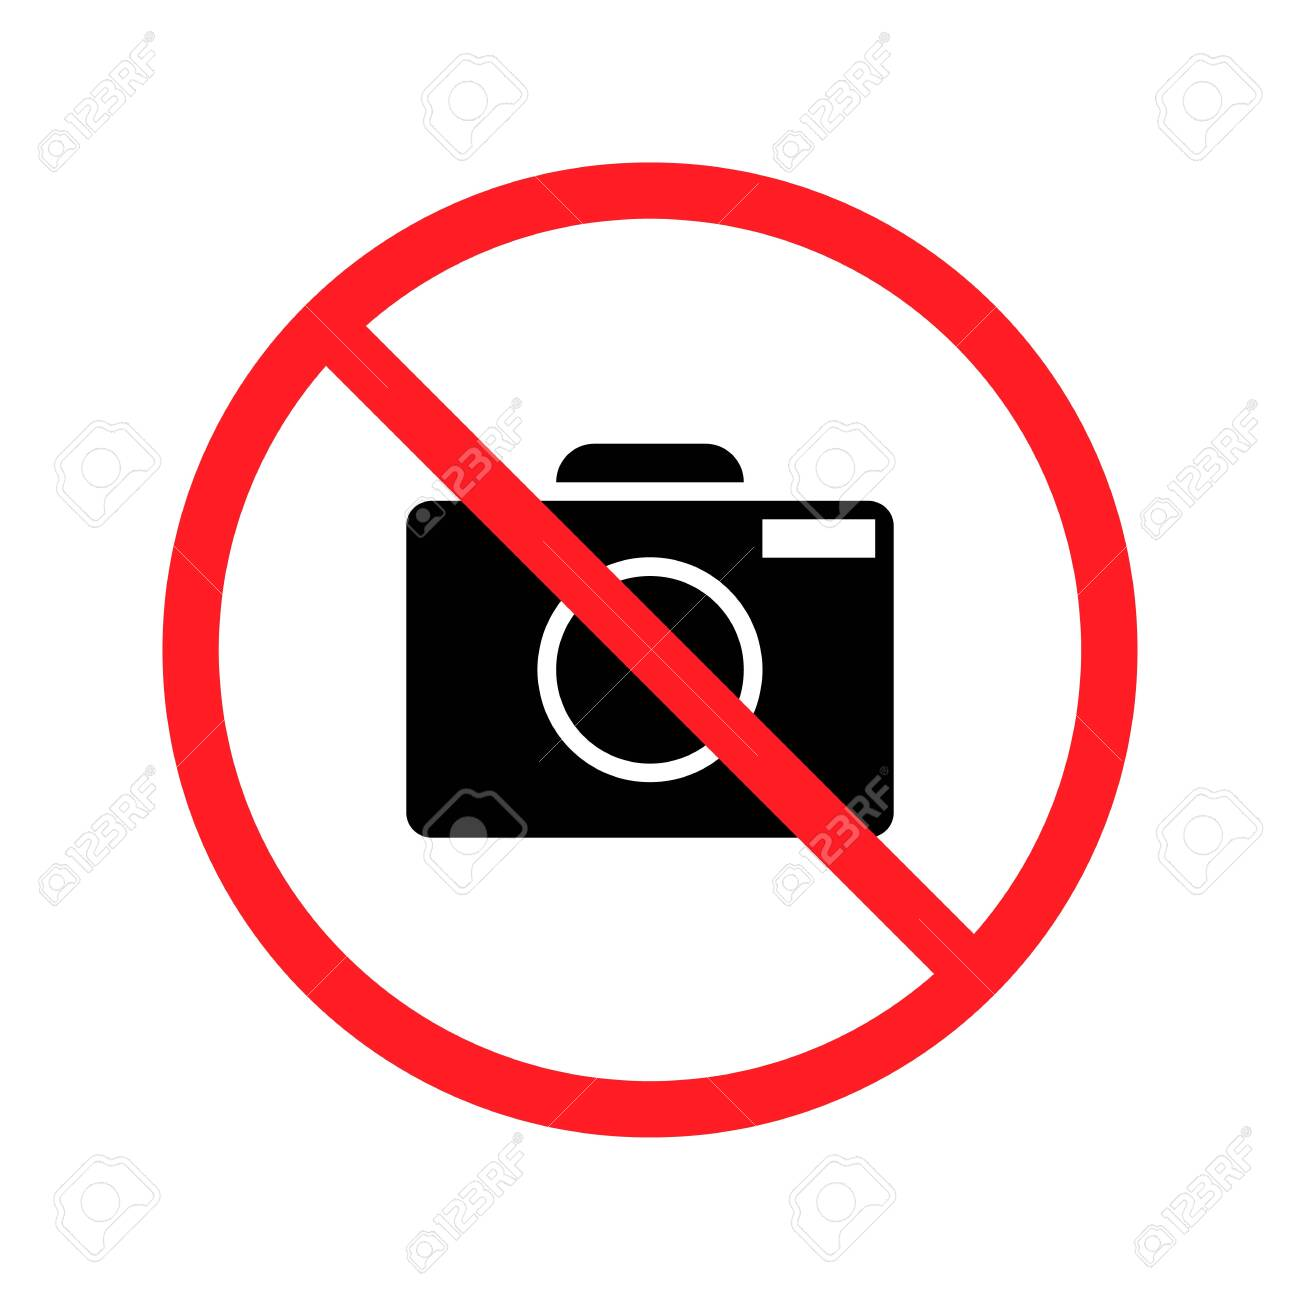 No taking pictures. High quality prohibition sign isolated on white. - 147601868